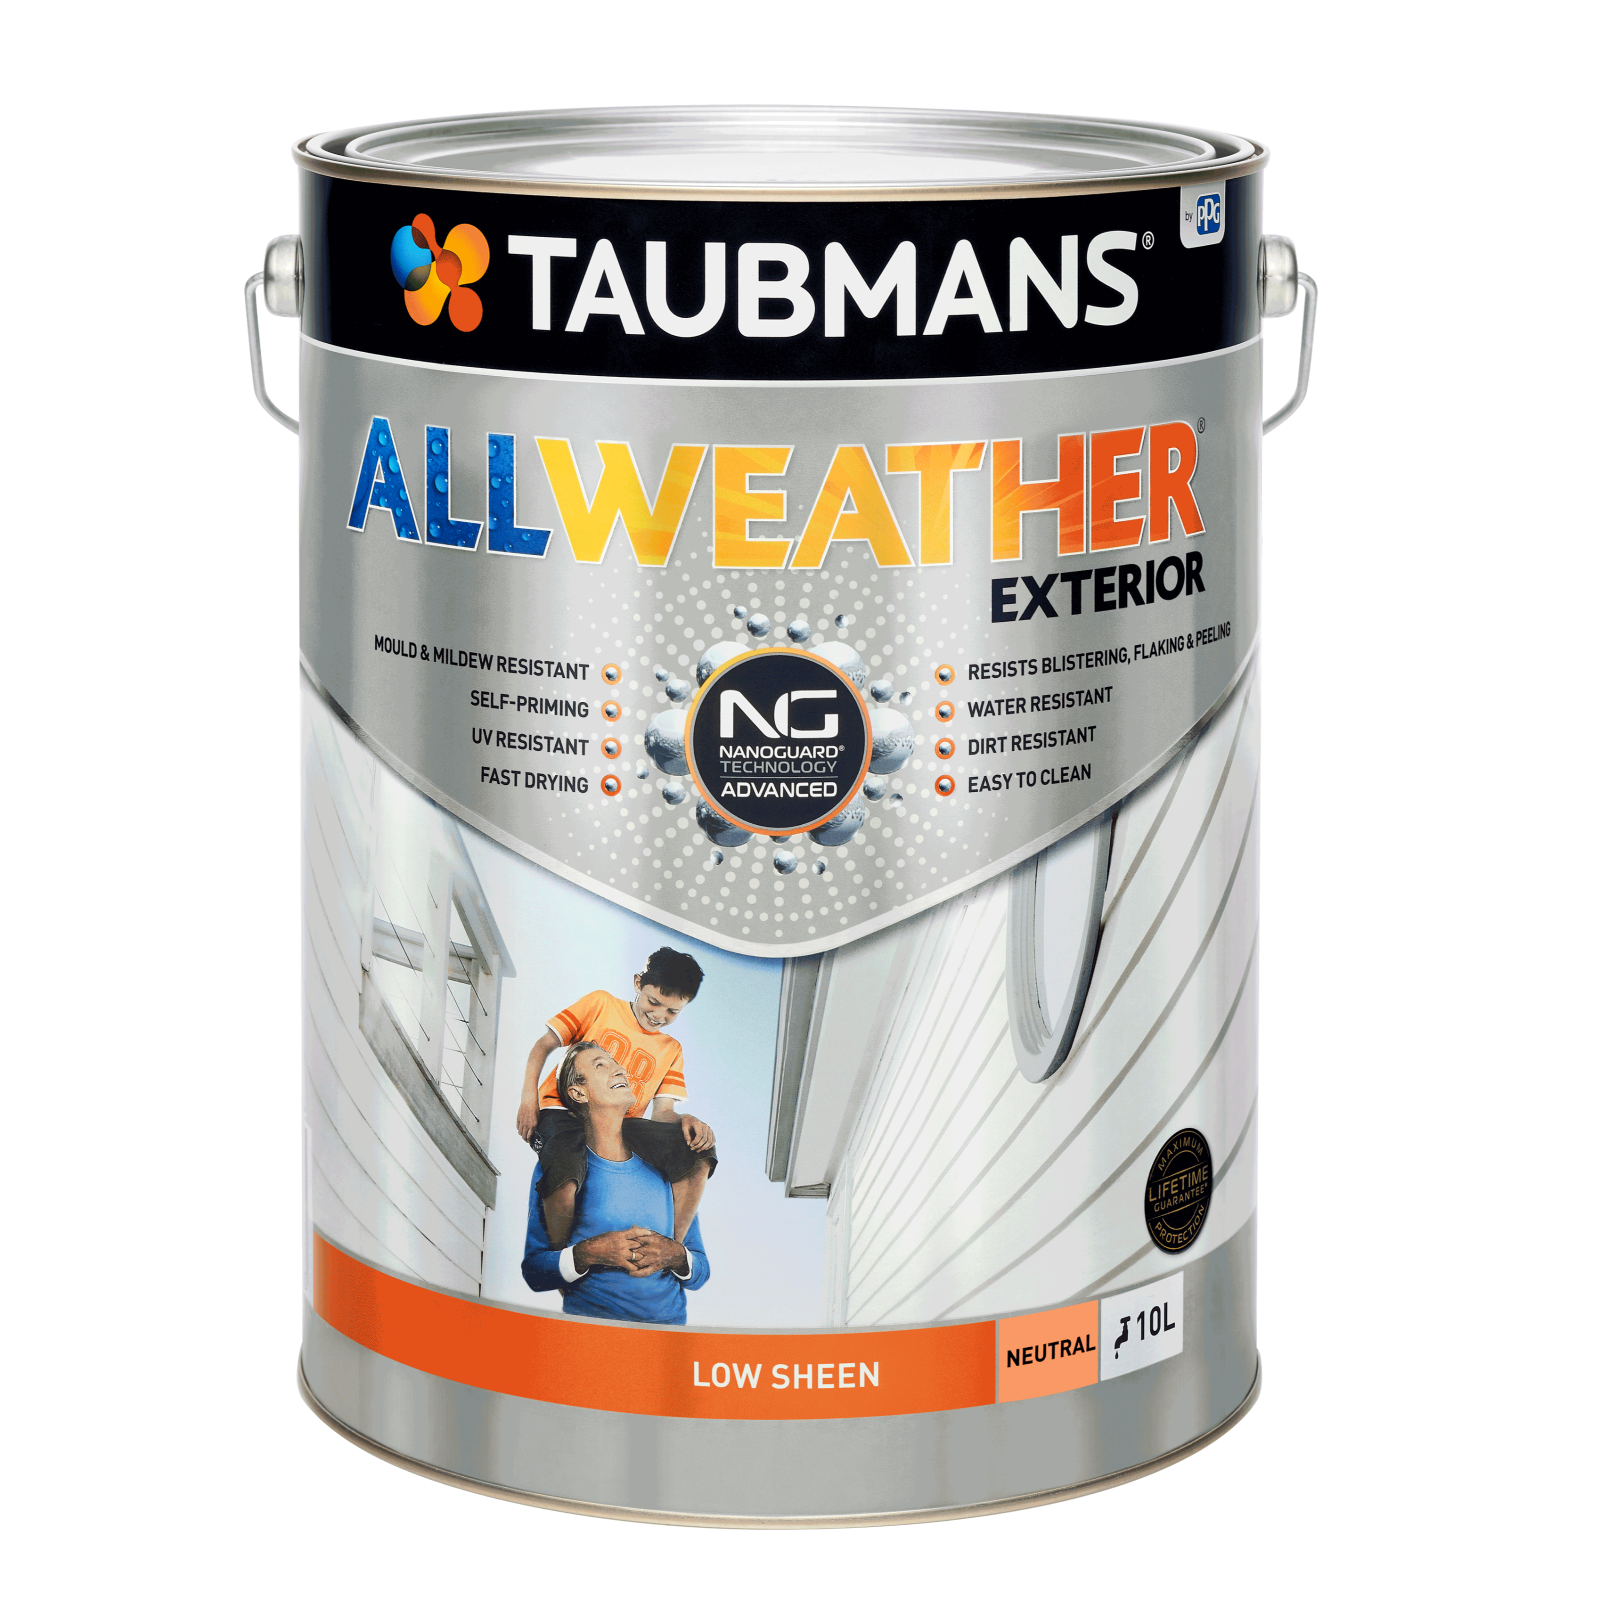 Taubmans 10L Neutral Low Sheen All Weather Exterior Paint